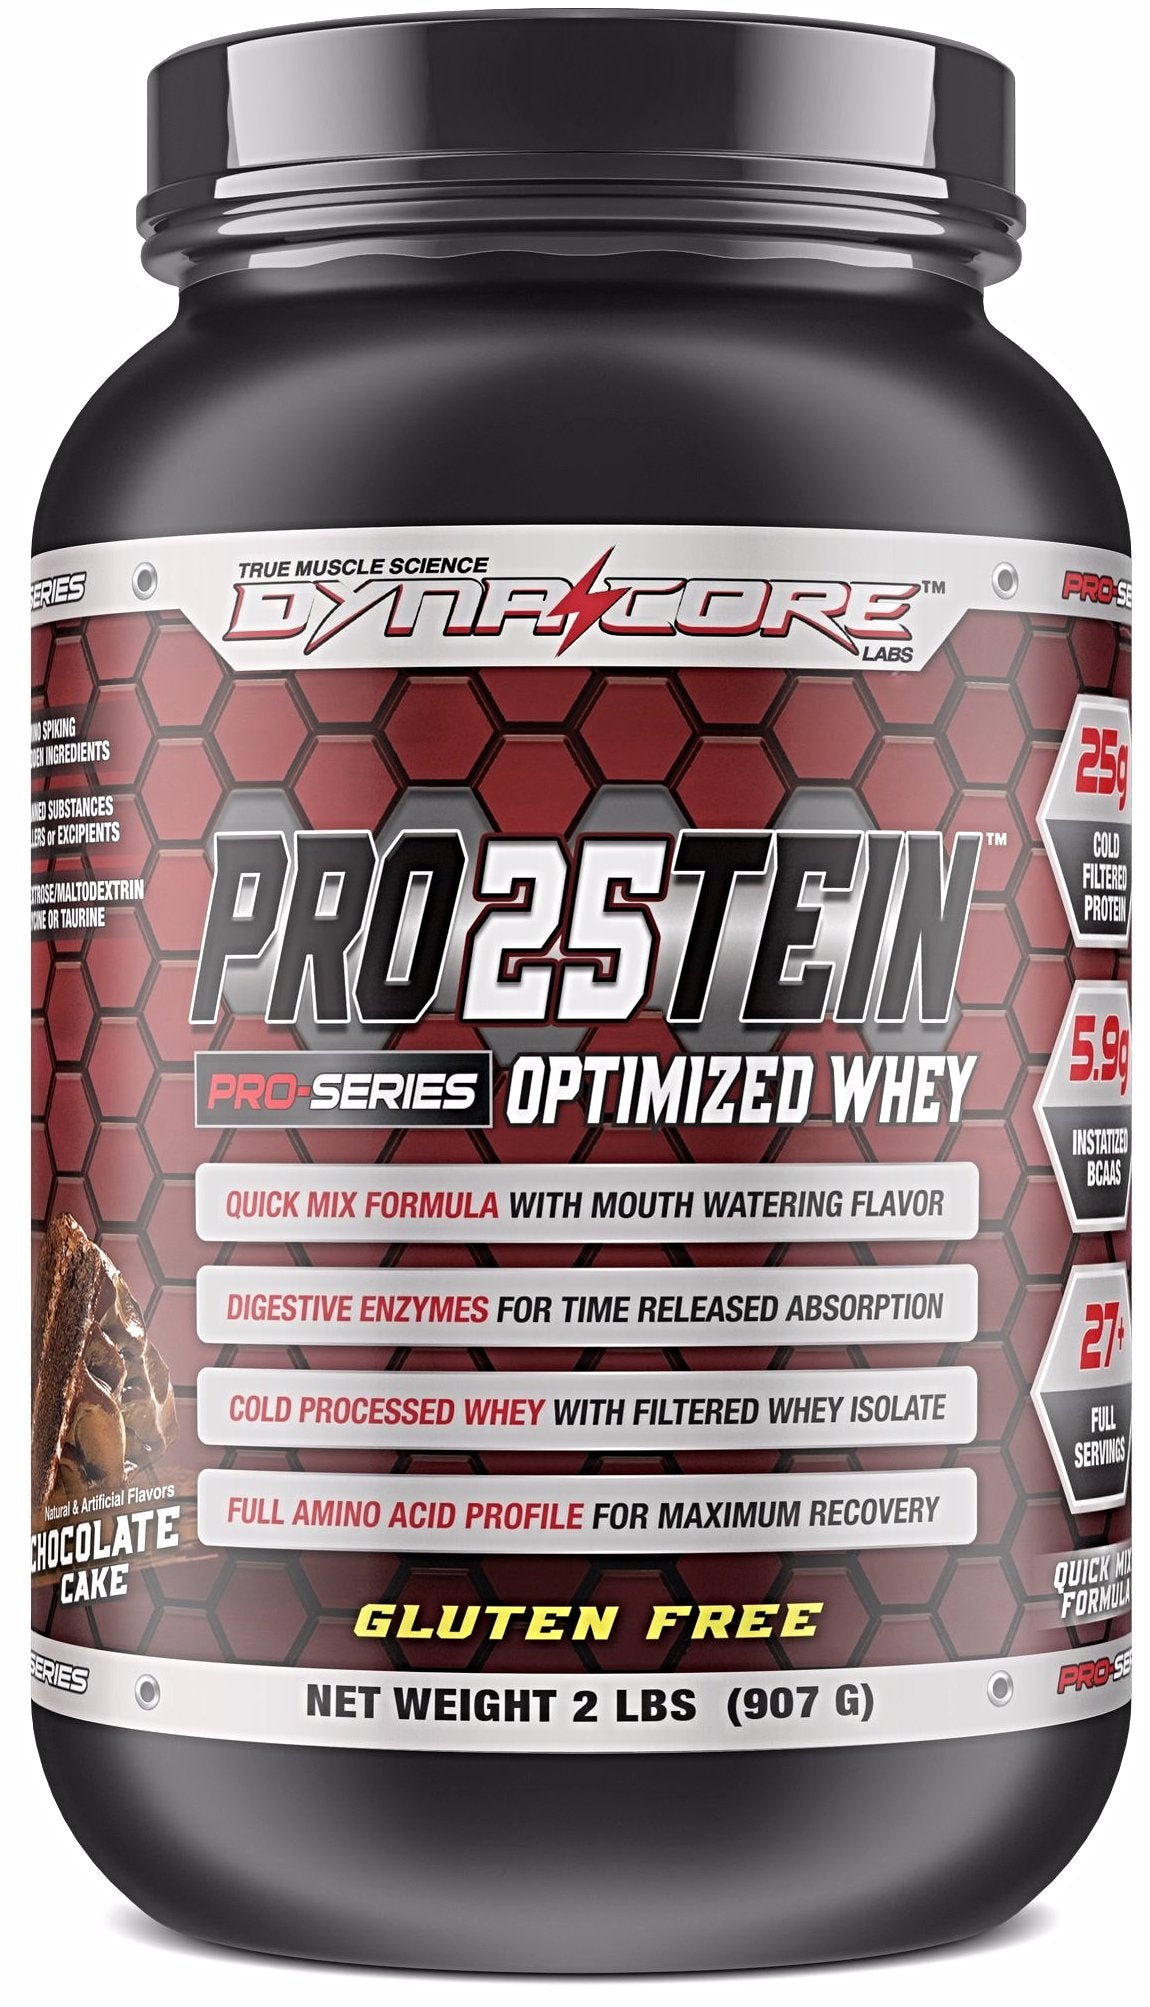 Dyna-Core Labs-Pro25tein- Optimized Whey Protein-Chocolate Cake